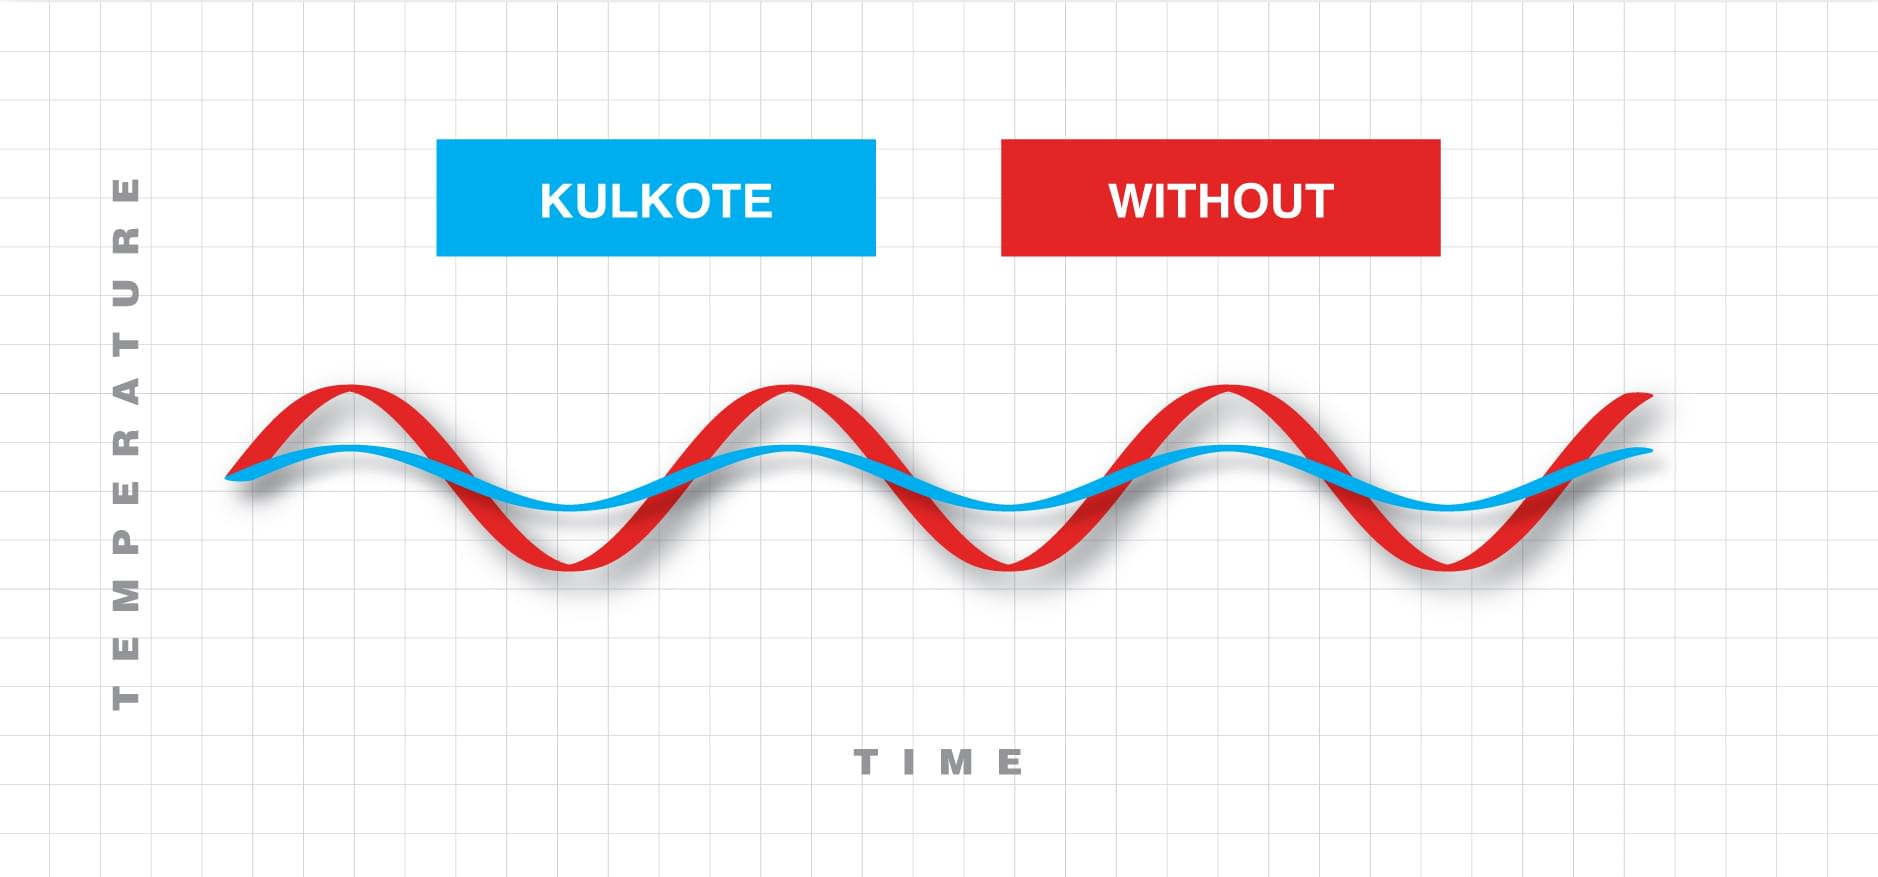 Graph showing the managed variance of temperature over time when using KulKote - Temperature Regulating Technology.